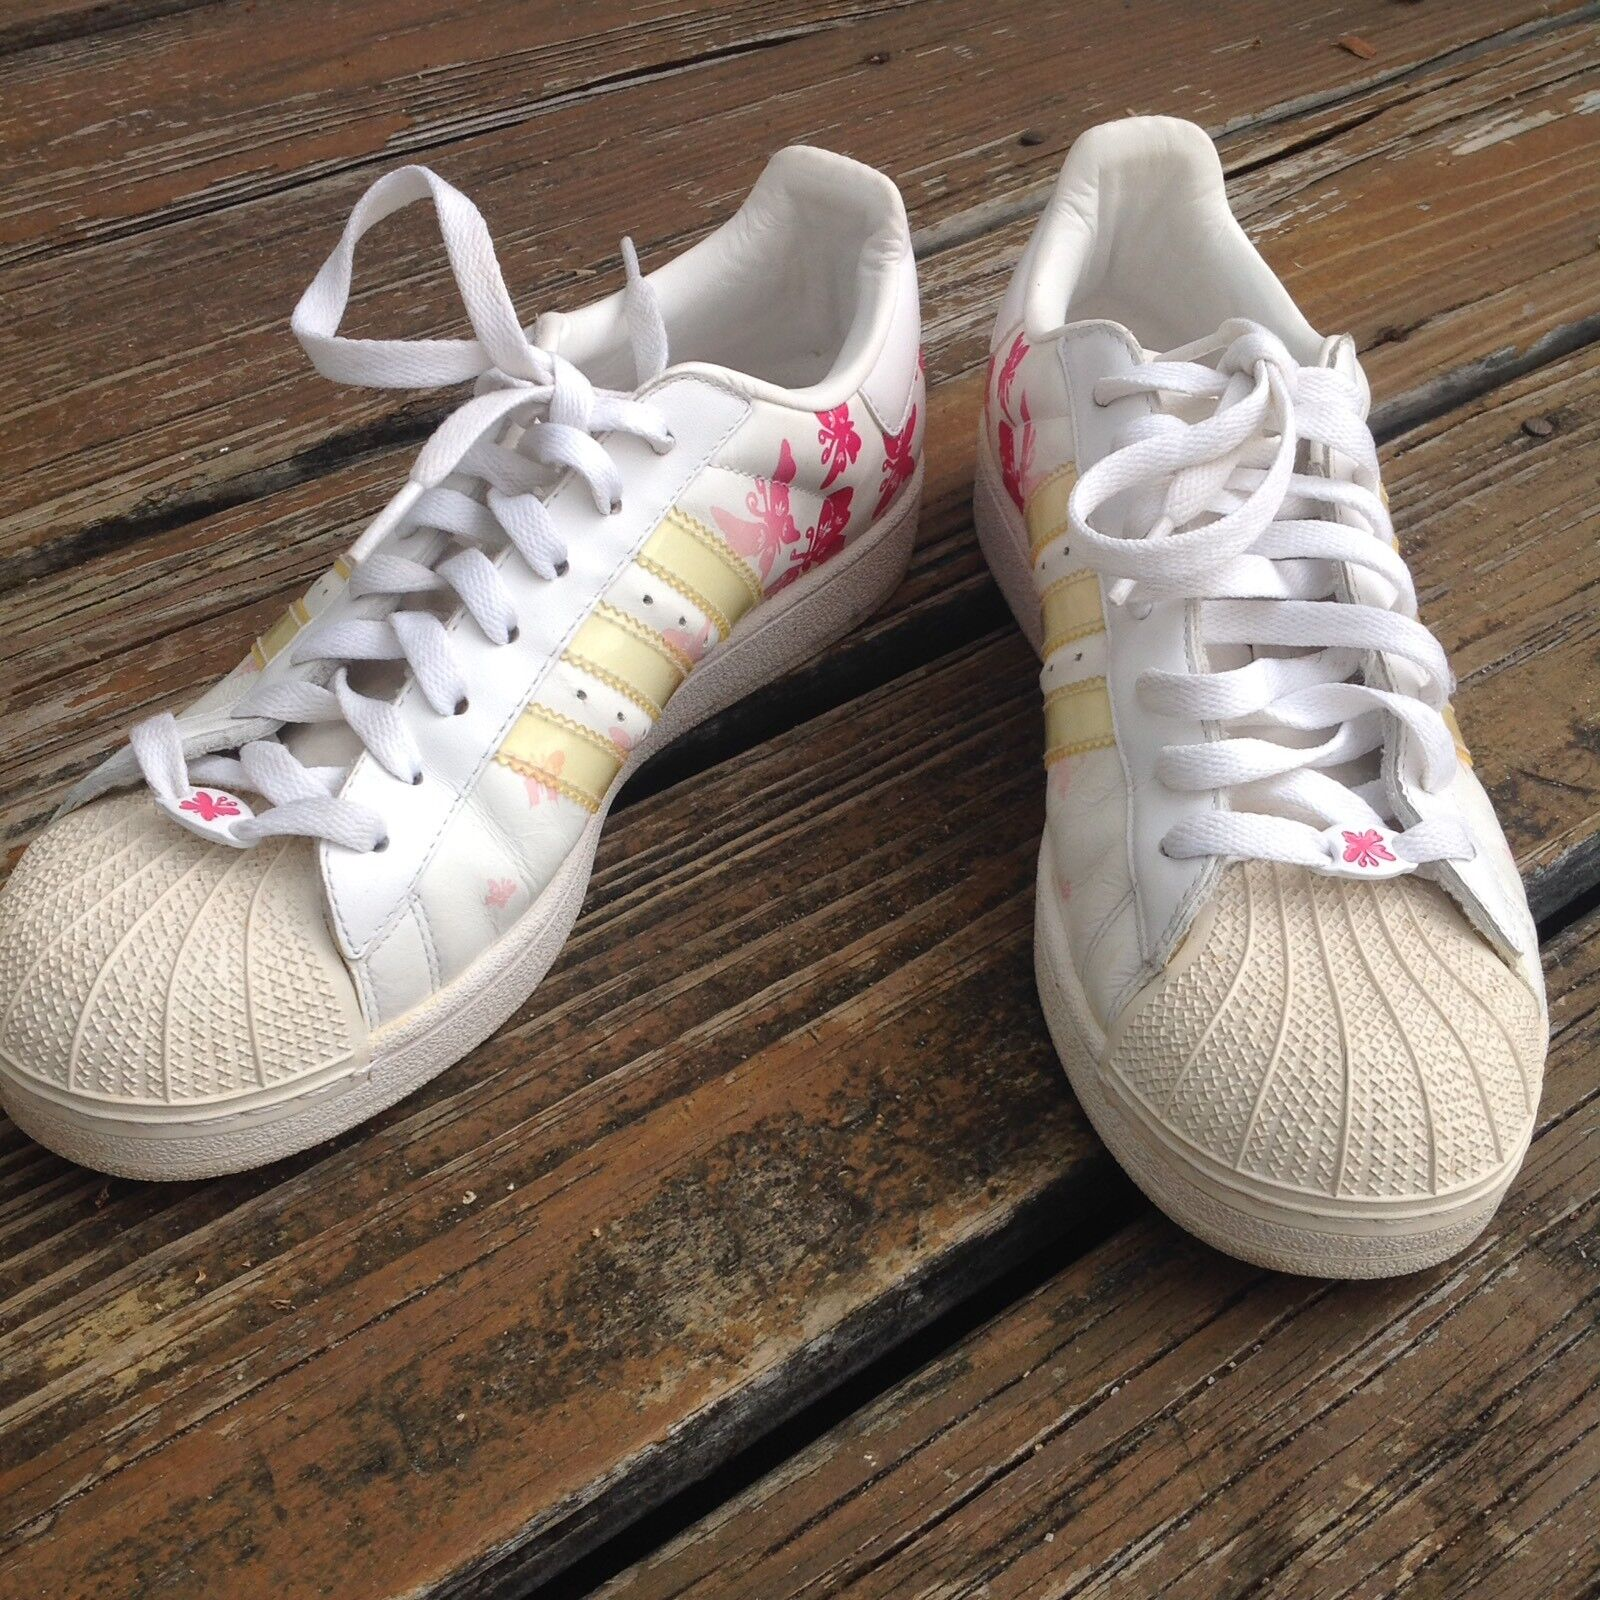 Adidas Butterfly White Pink Sneakers Womens Sz 8.5 Athletic Shoes RARE HTF Seasonal price cuts, discount benefits